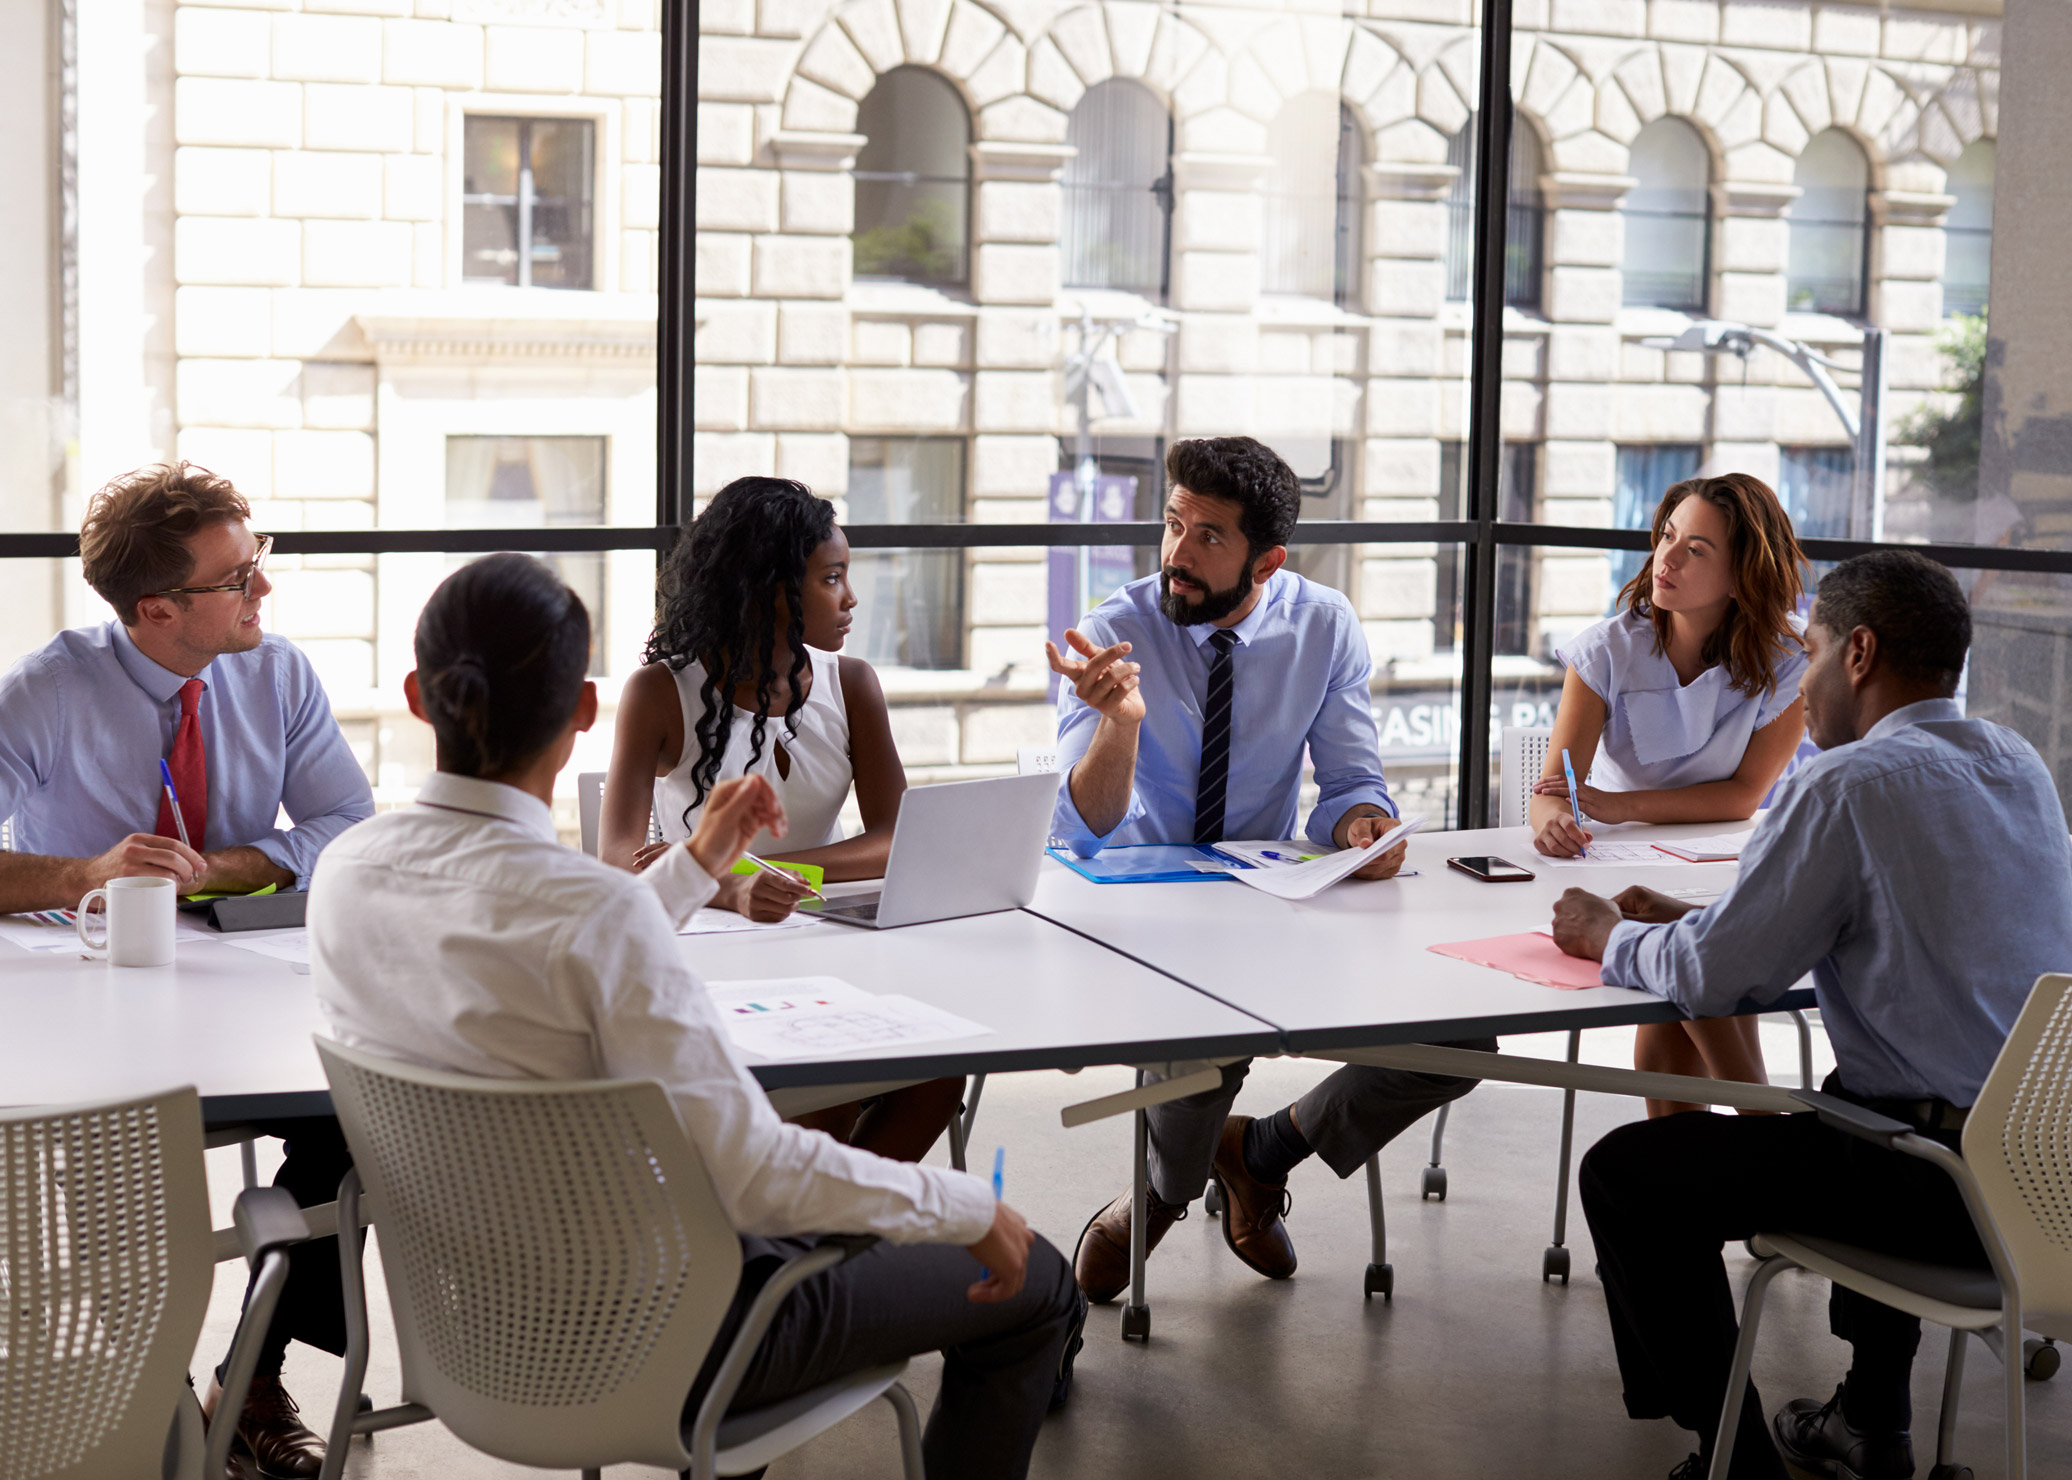 7 Ways to Support Employees Career Advancement Blog RHMR 11 15 17